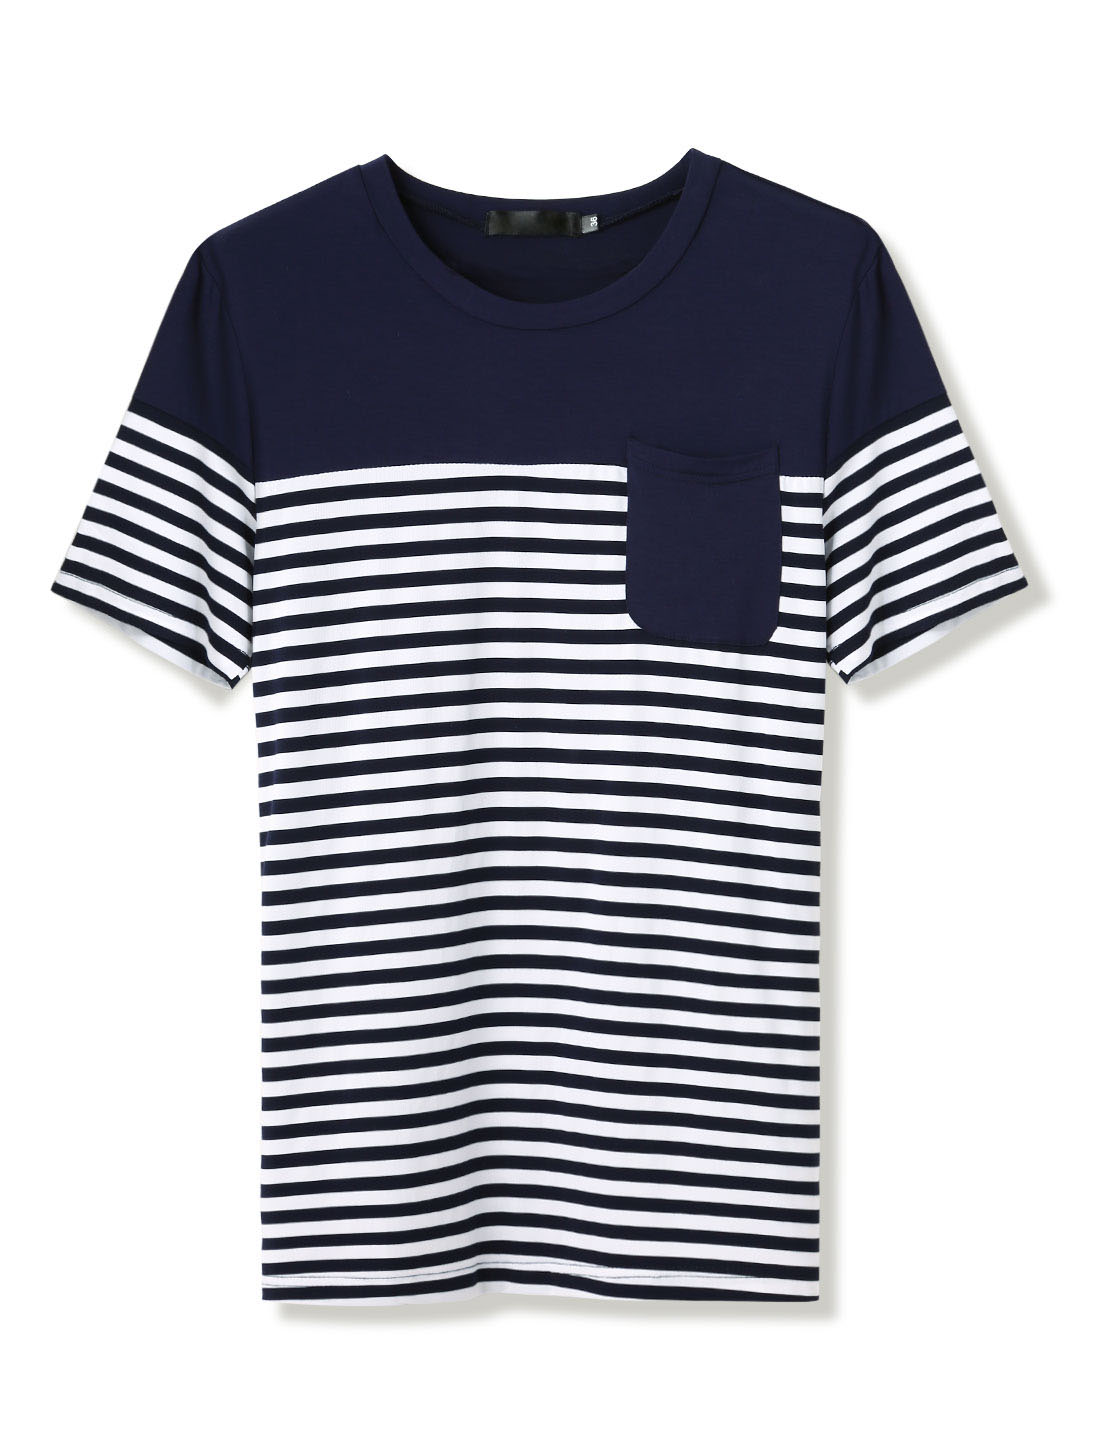 Men Short Sleeve Patch Pocket Slim Fit Casual Striped Tee Shirt Navy Blue M